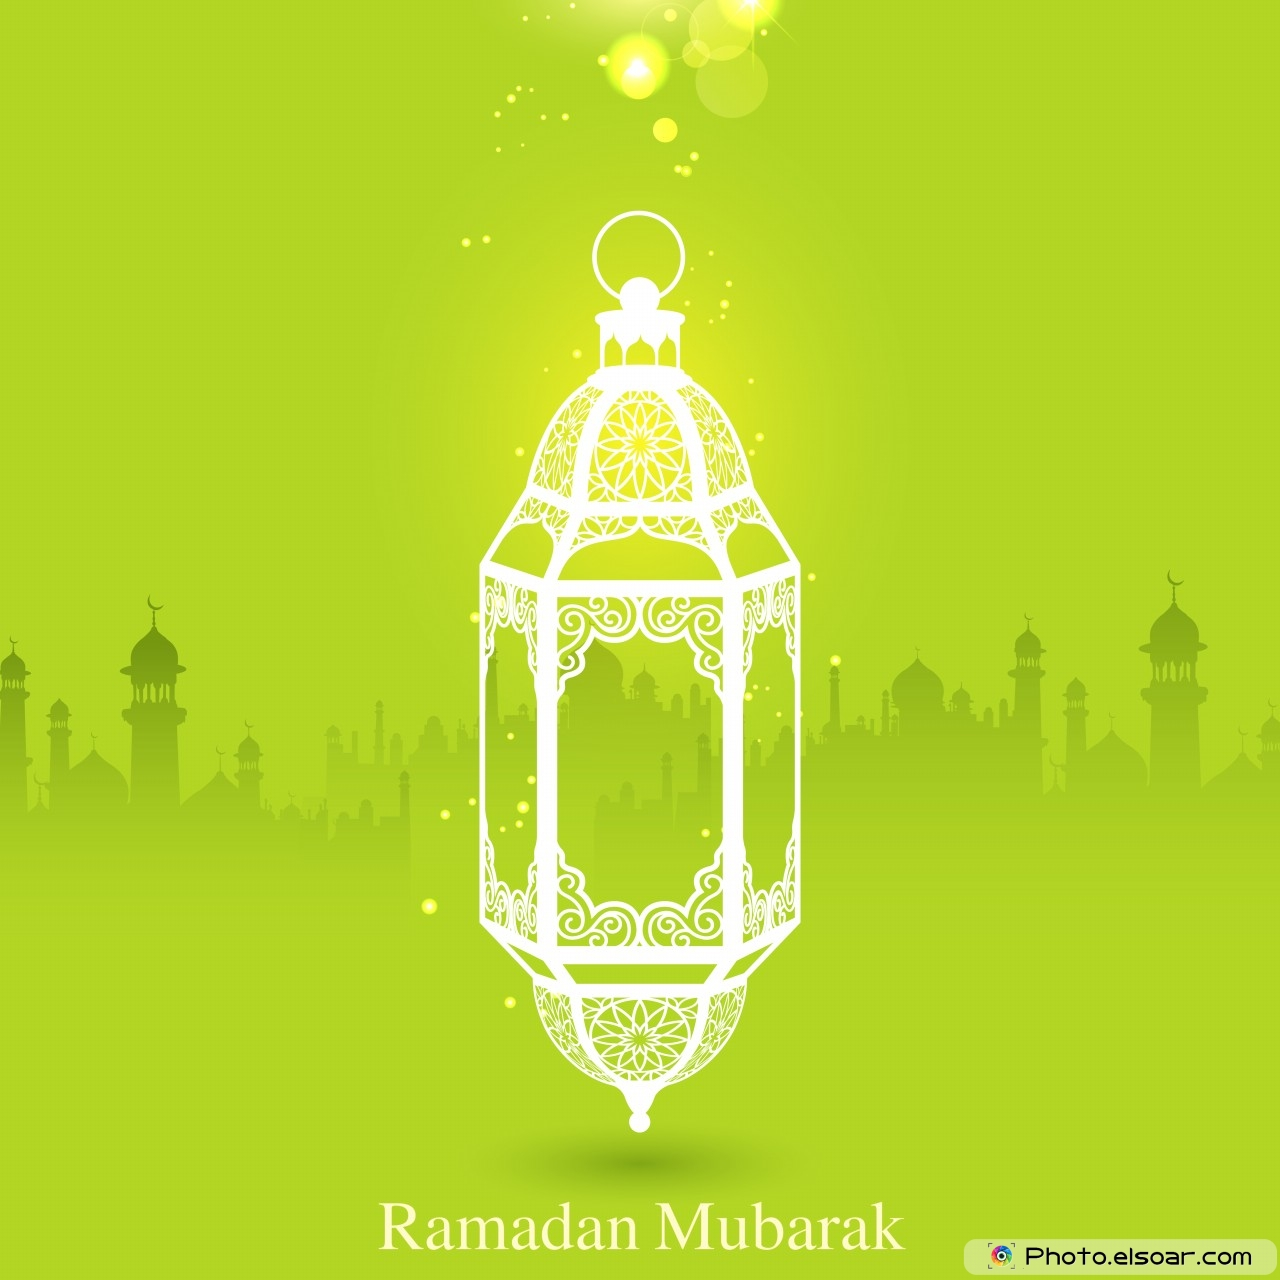 Ramadan Mubarak with pretty lantern